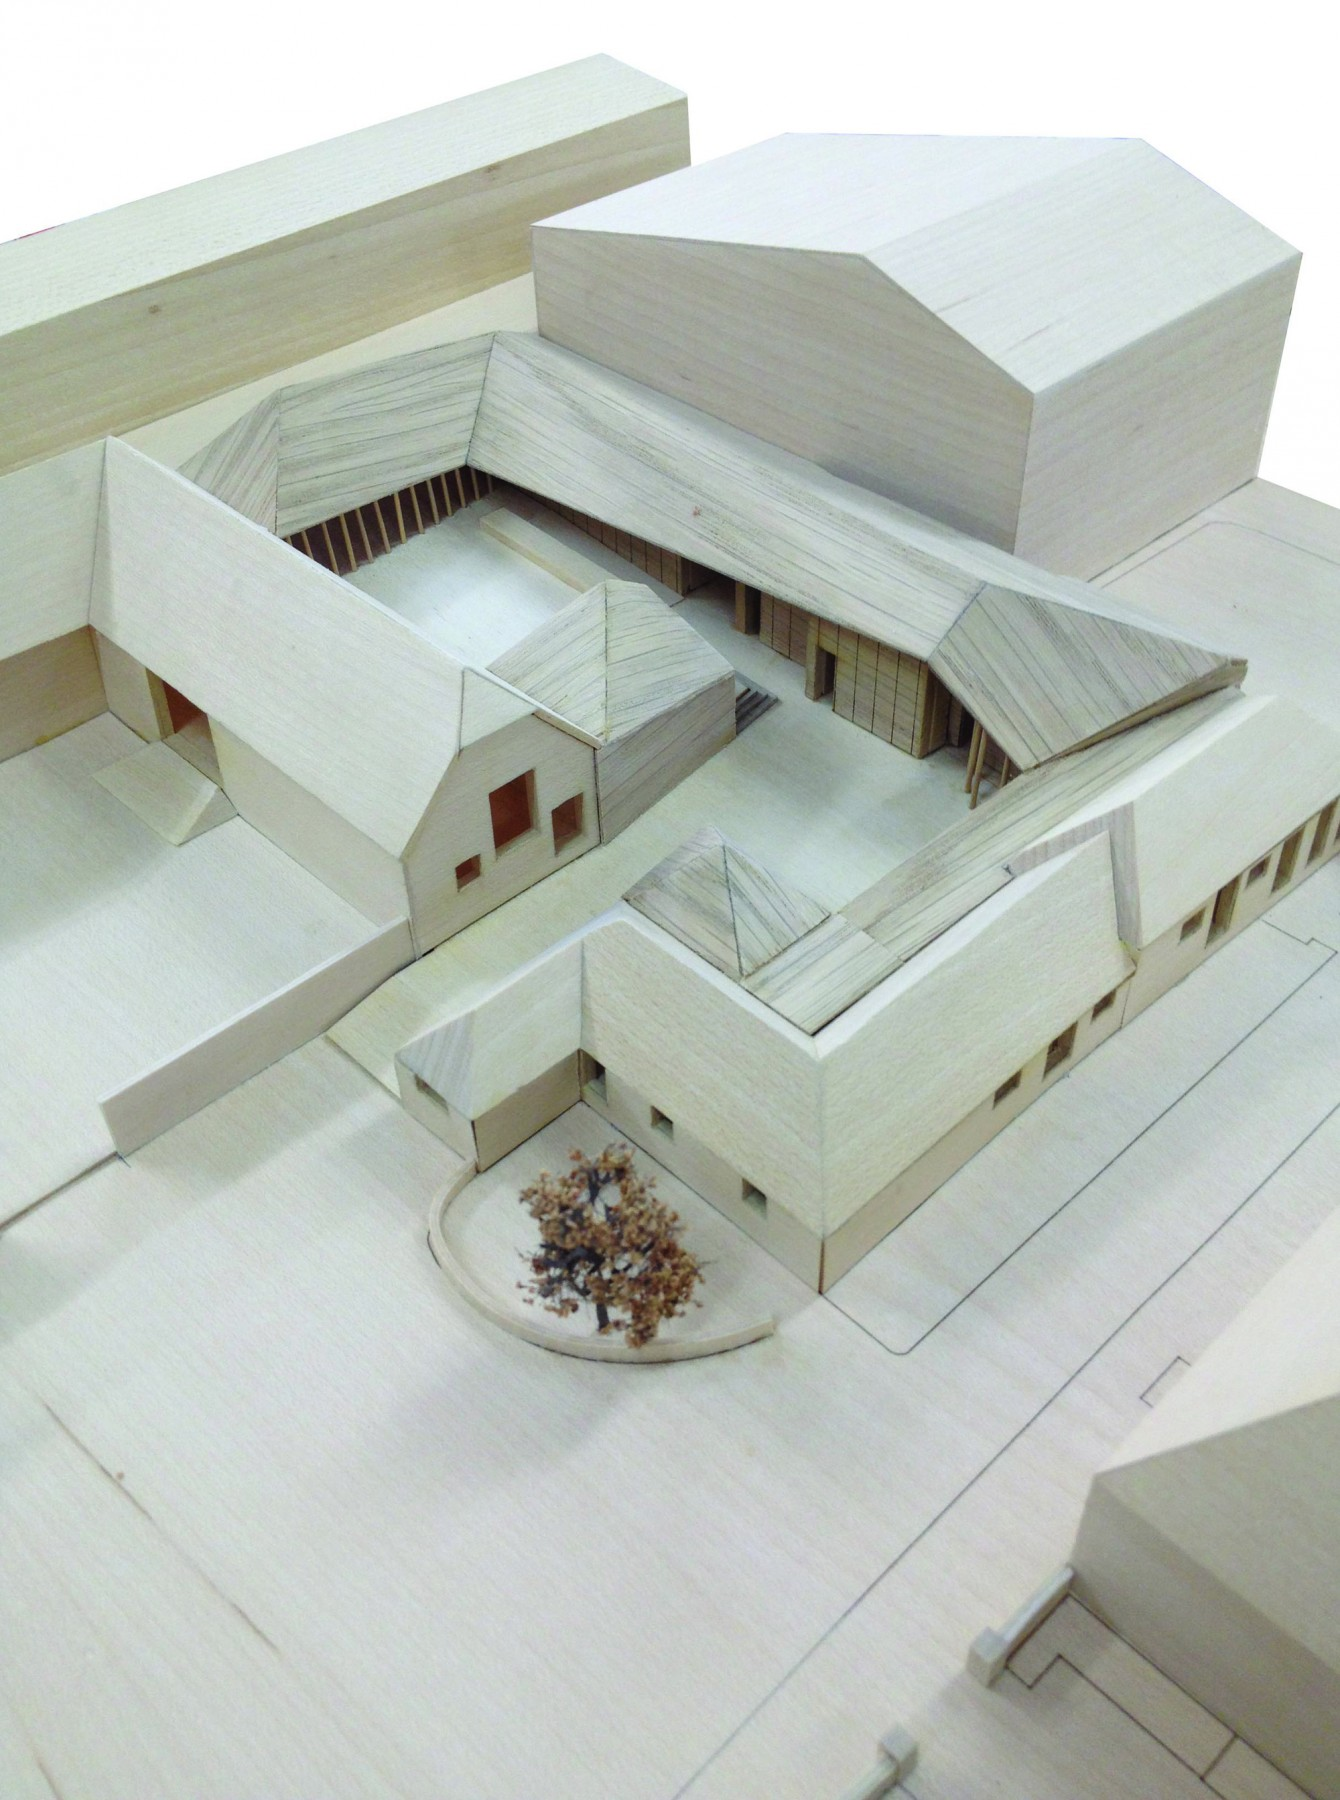 wood-architectural-model-charleston-jamie-fobert-architects-gallery-museum-architecture